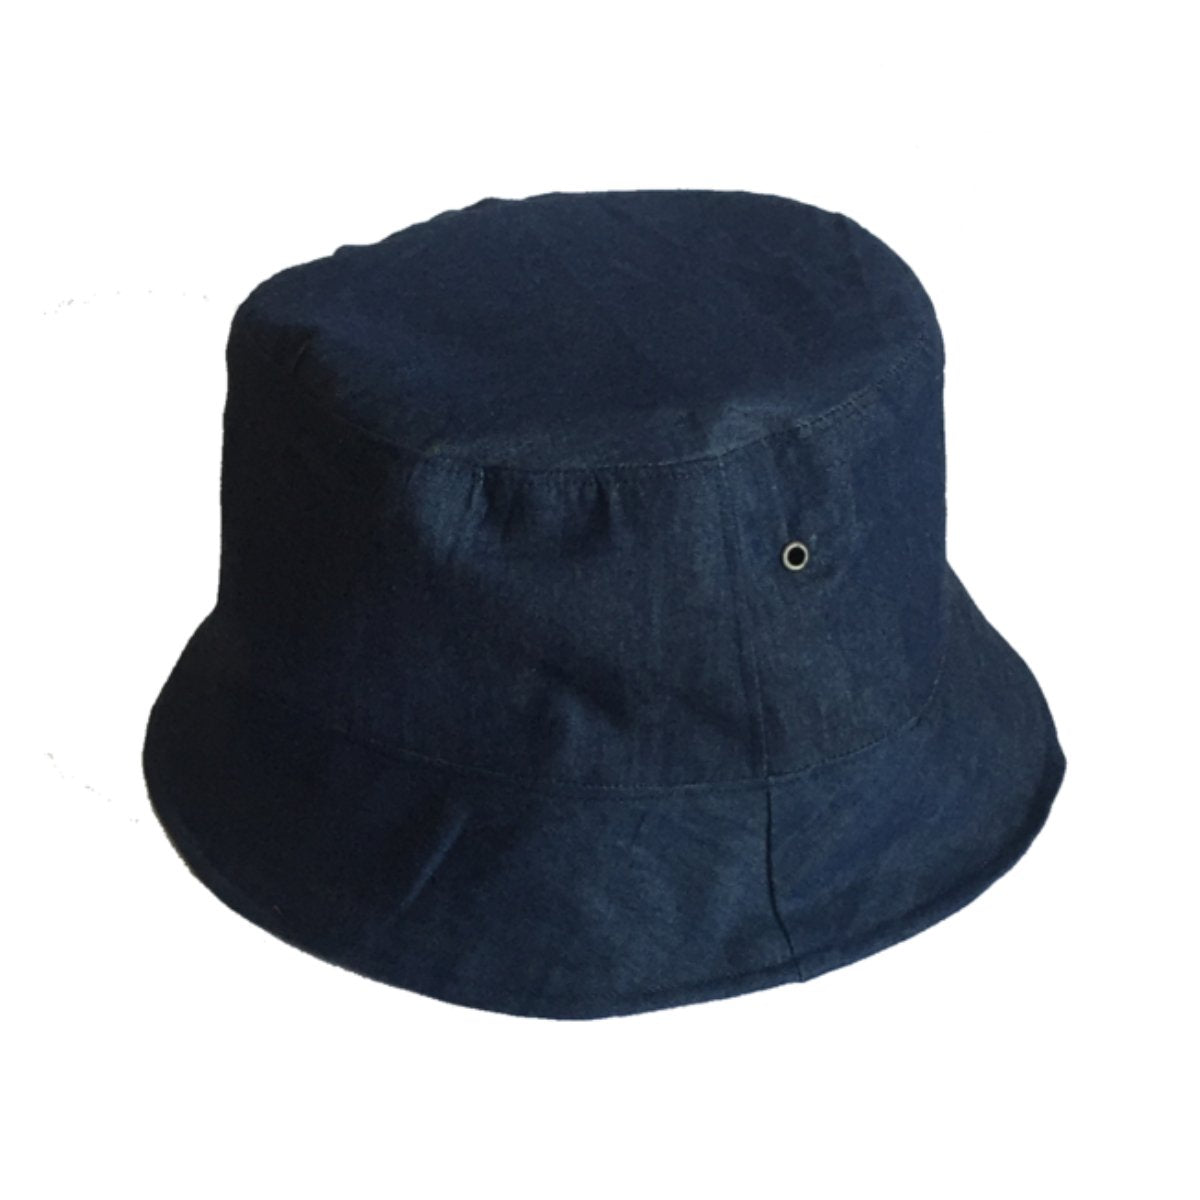 Reversible Denim Kente Bucket Hat 7dcdf790e63